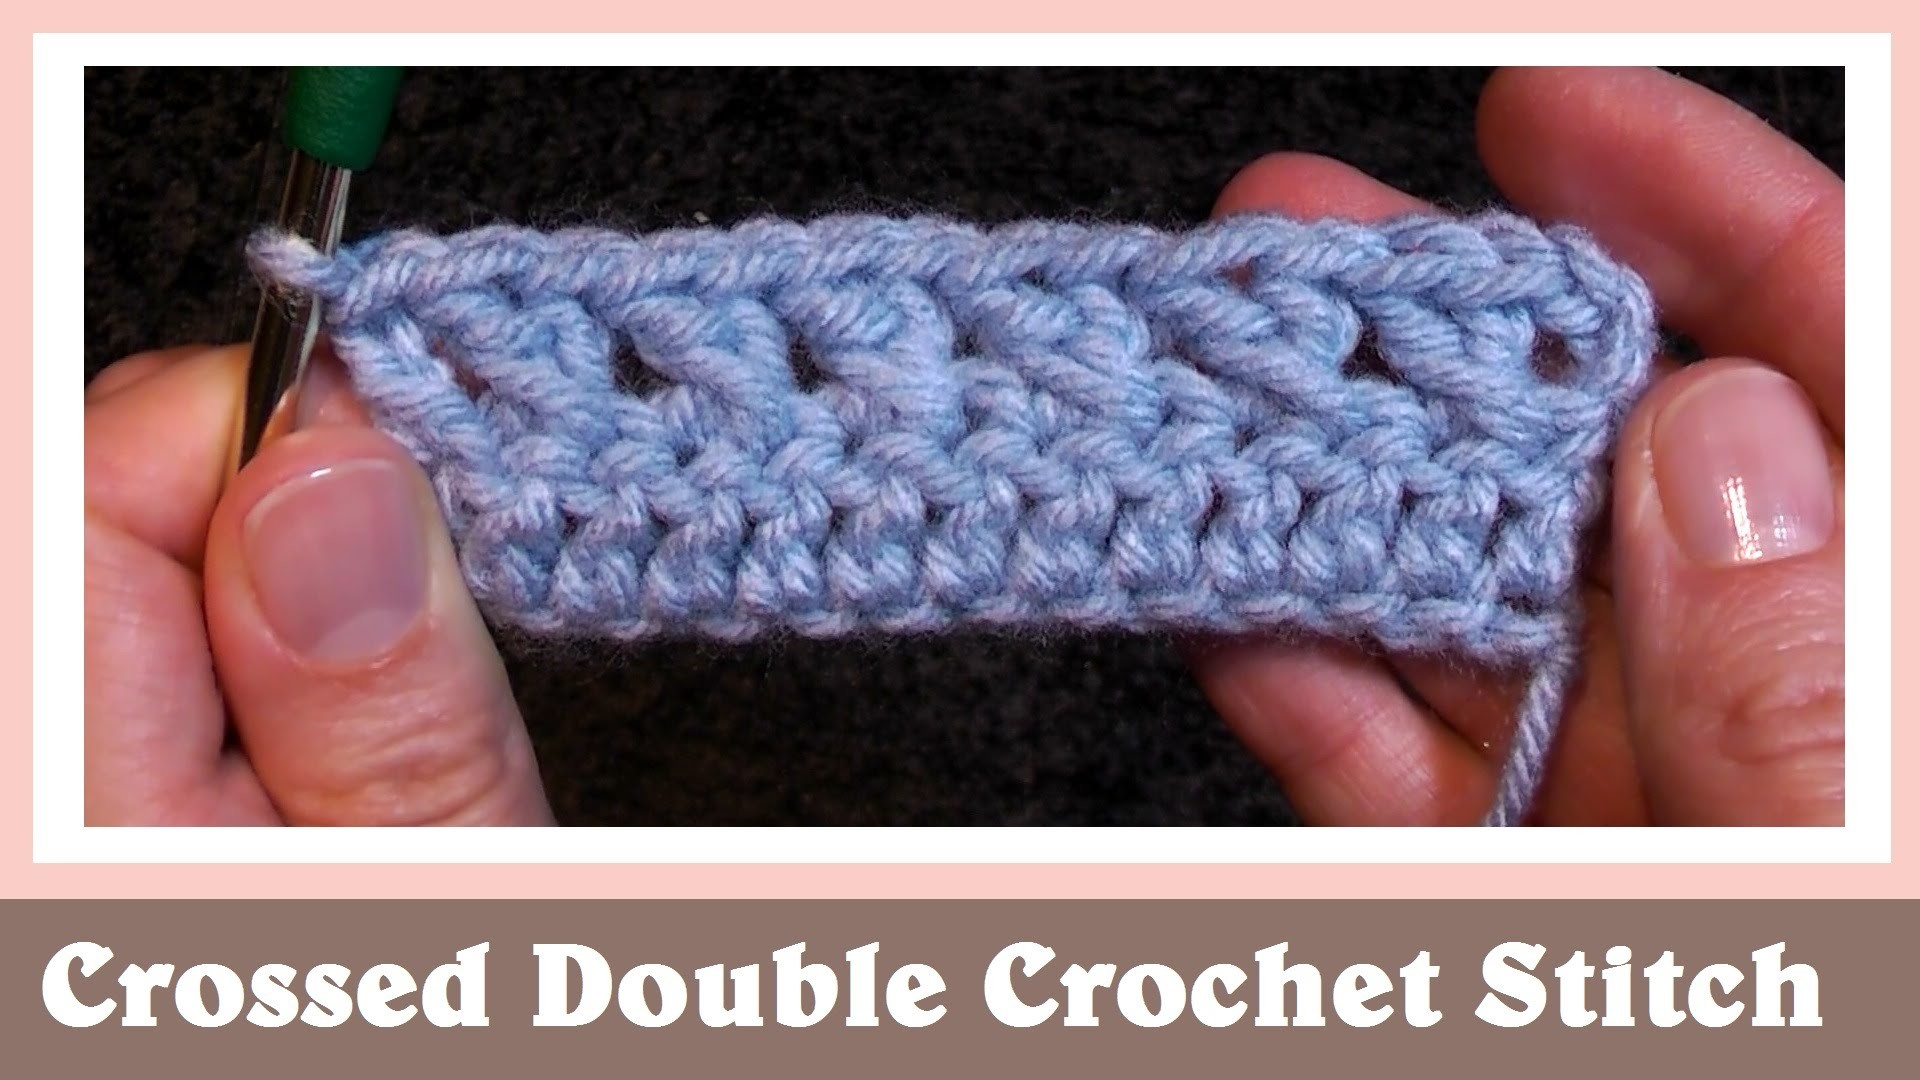 Crossed Double Crochet Stitch